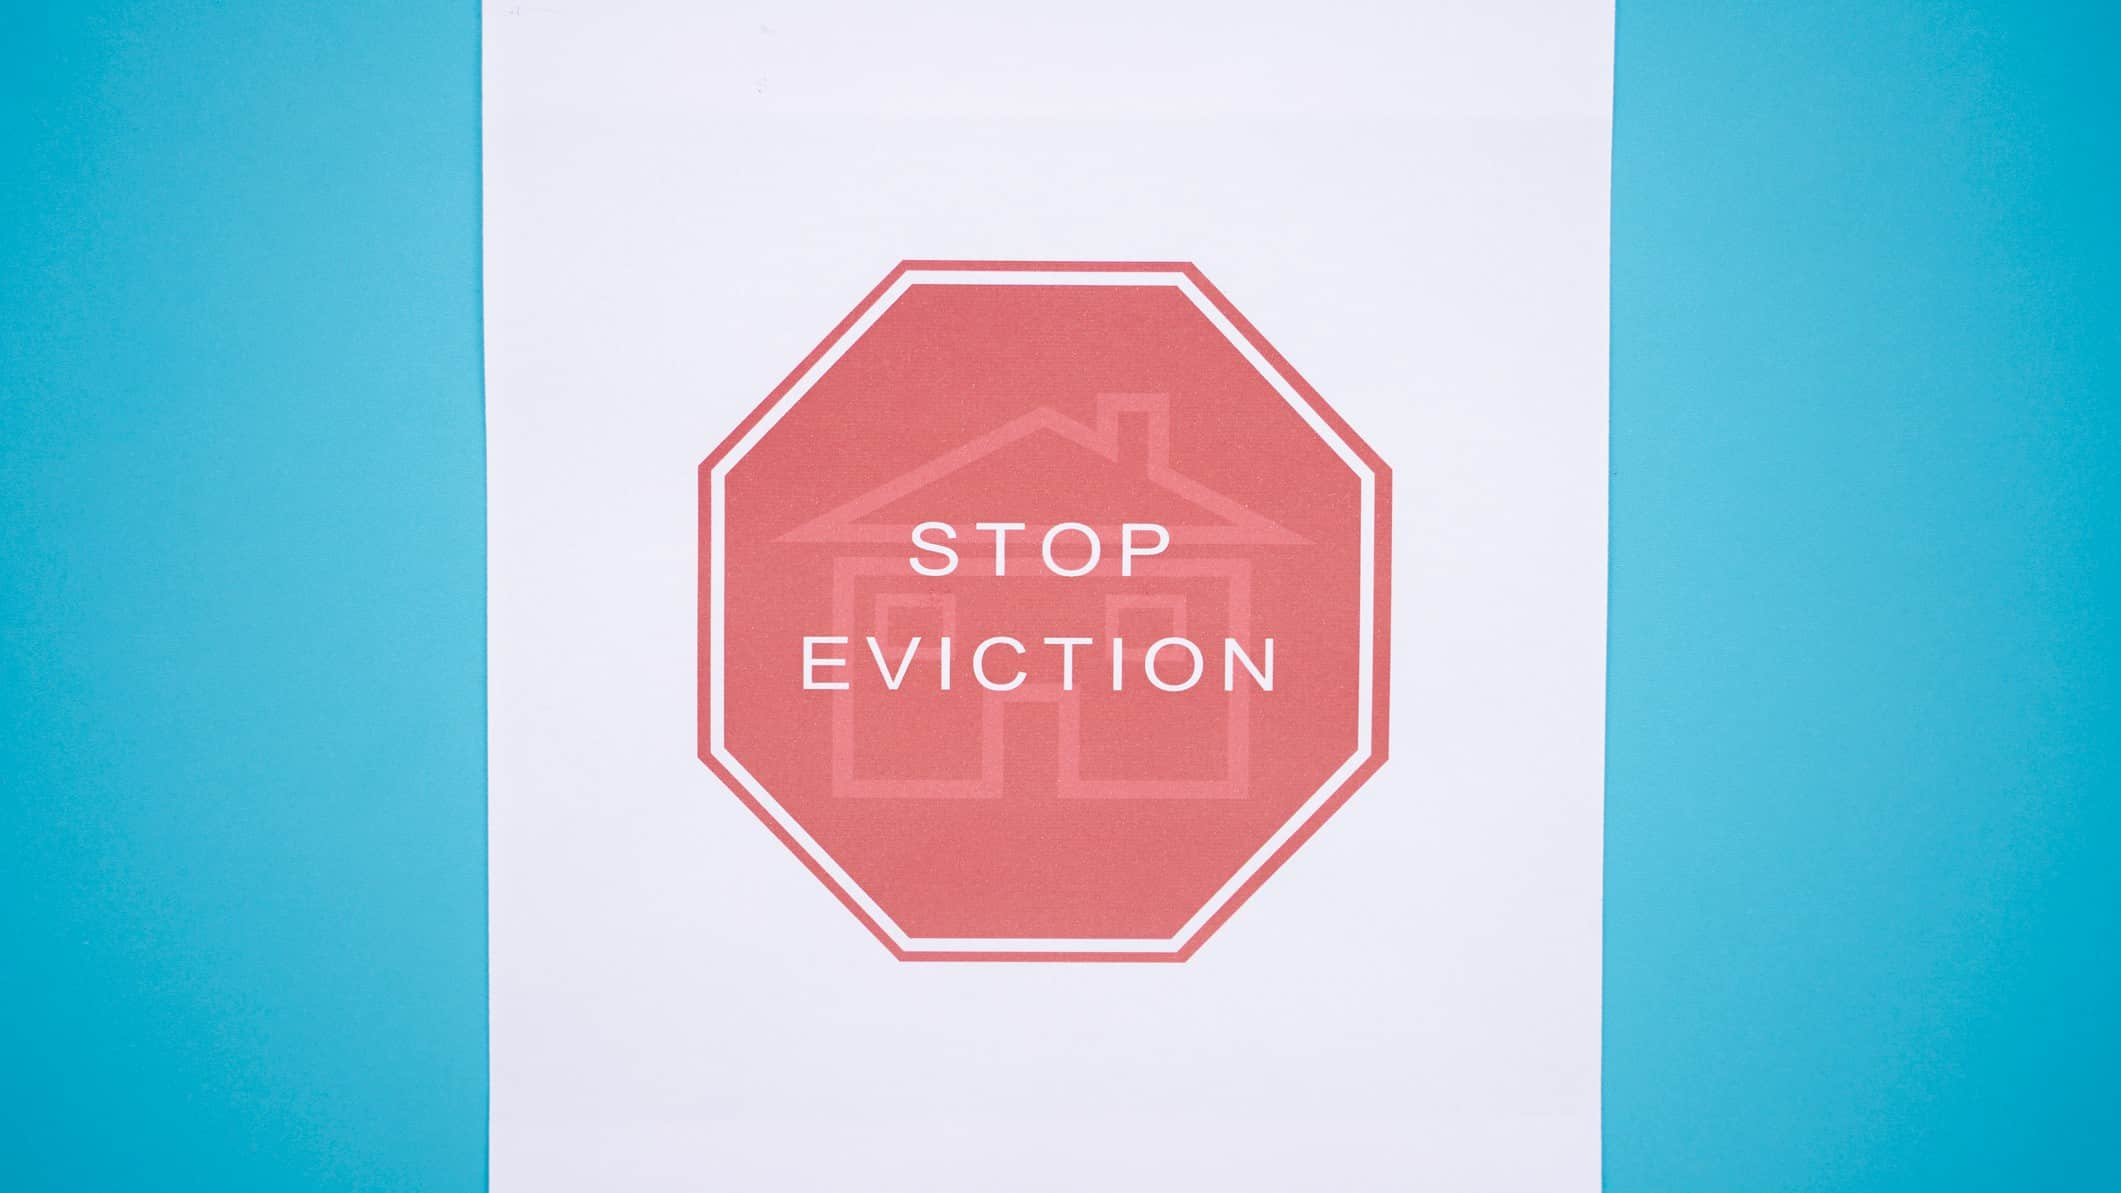 ban on home sale foreclosure represented by stop sign that says stop eviction